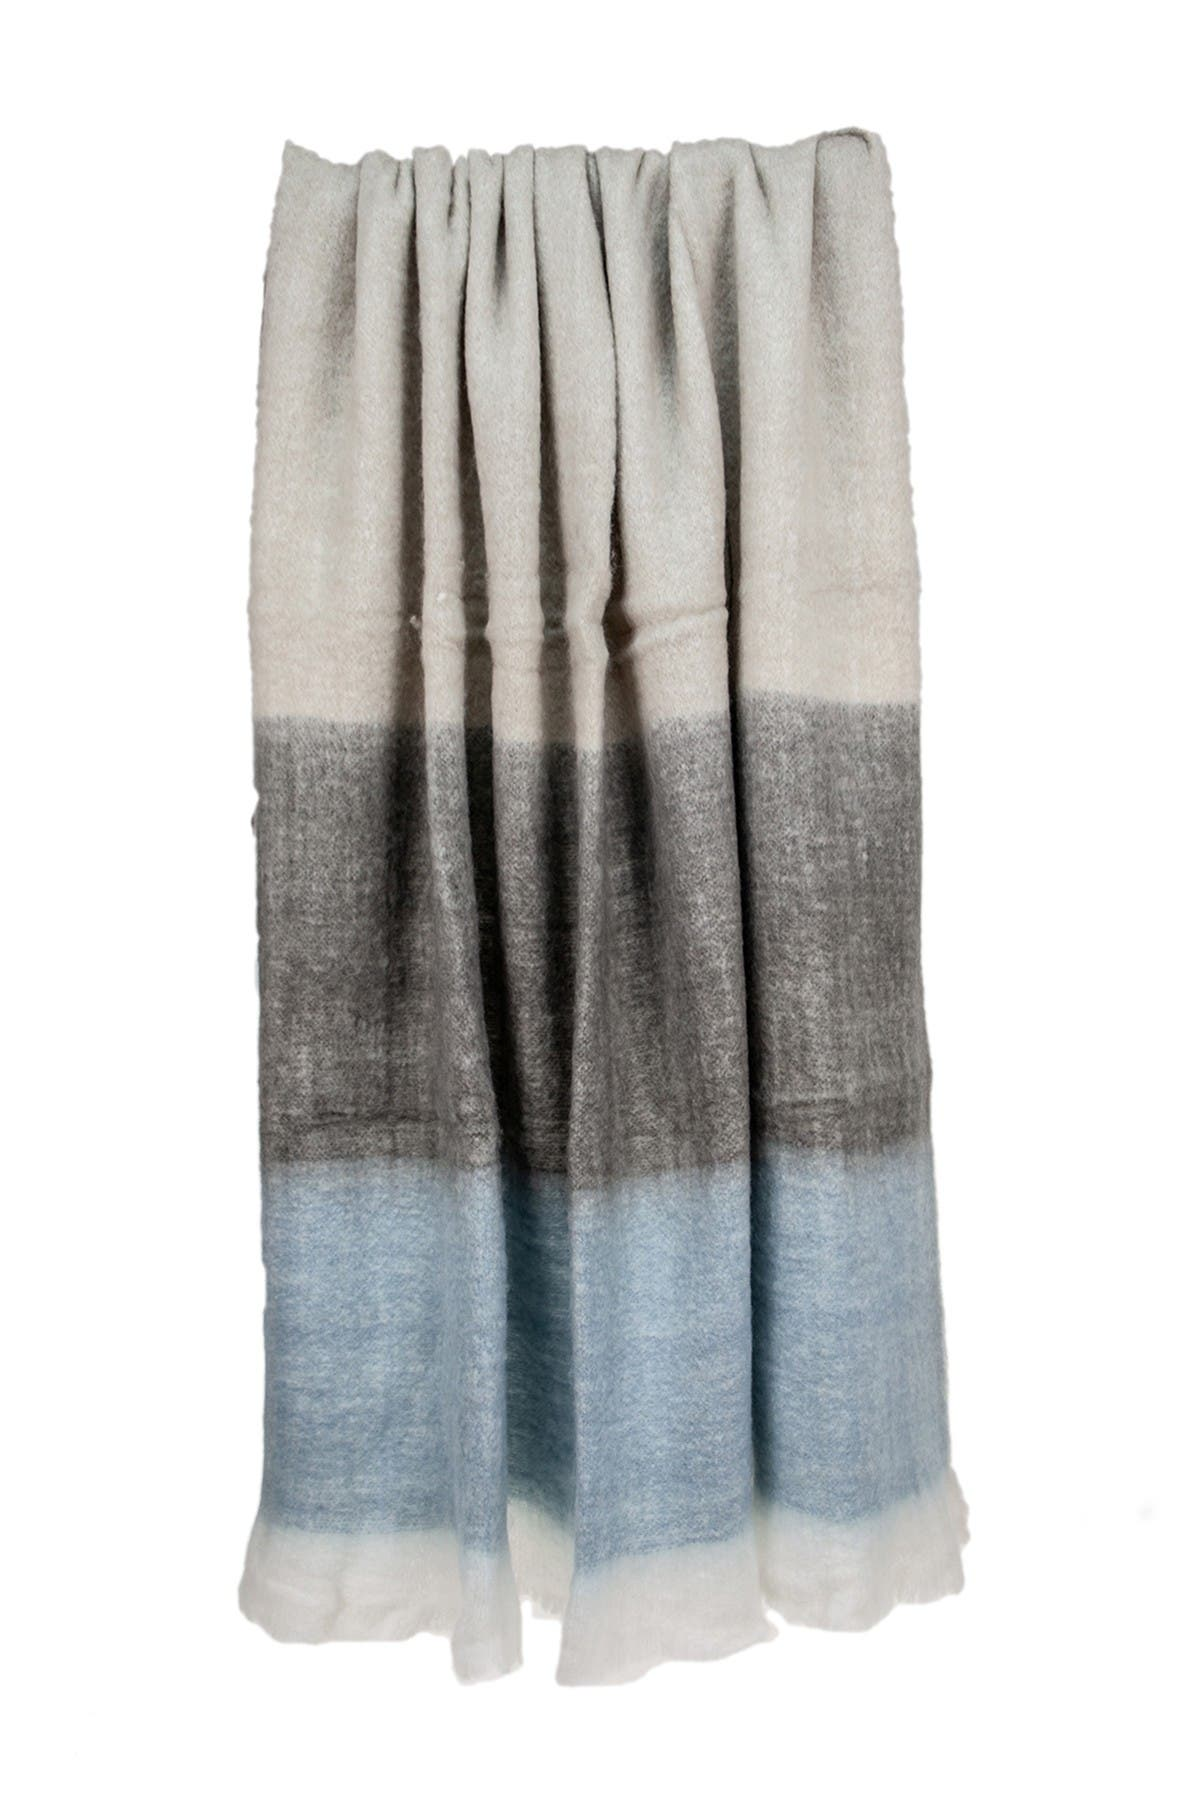 """Image of Parkland Collection Larco Transitional Multi 52"""" x 67"""" Woven Handloom Throw Blanket"""